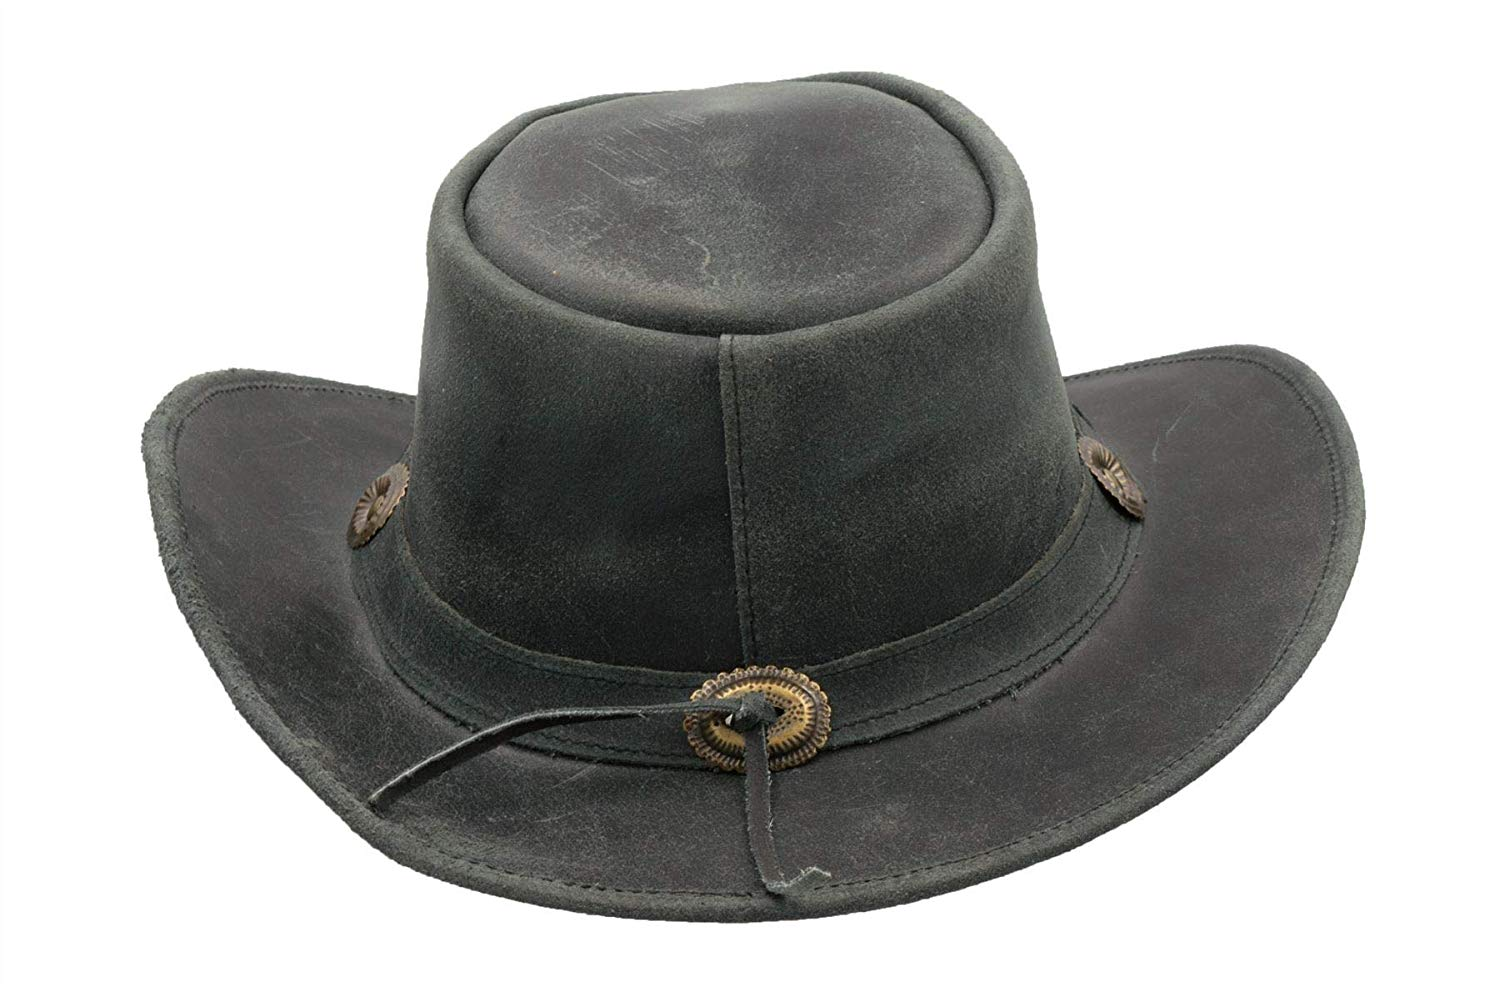 Leather Cowhide Outback Antique Hat Walker and Hawkes